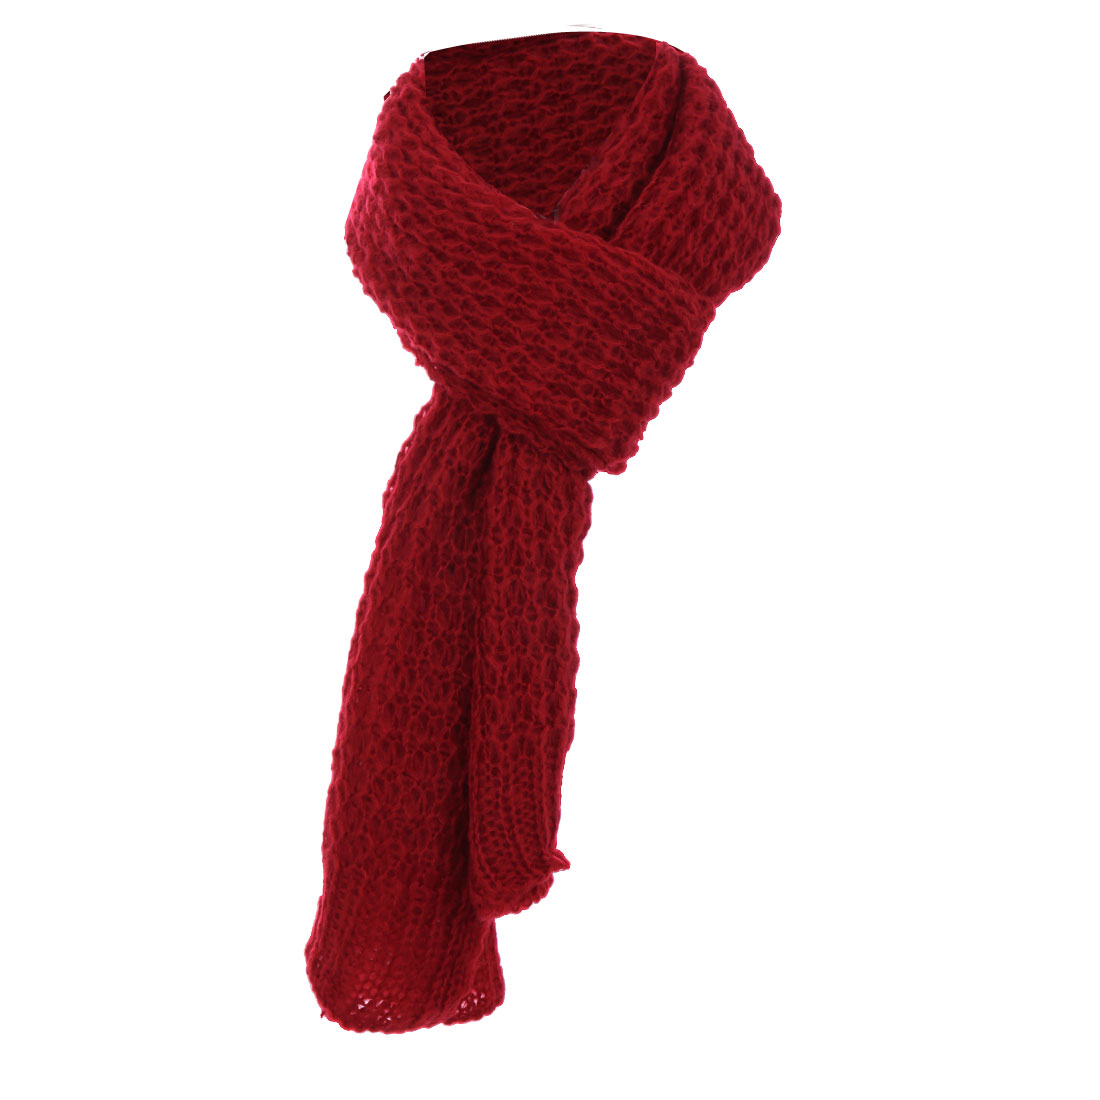 Men's Fashion Winter Warm Knitted Soft Red Scarf